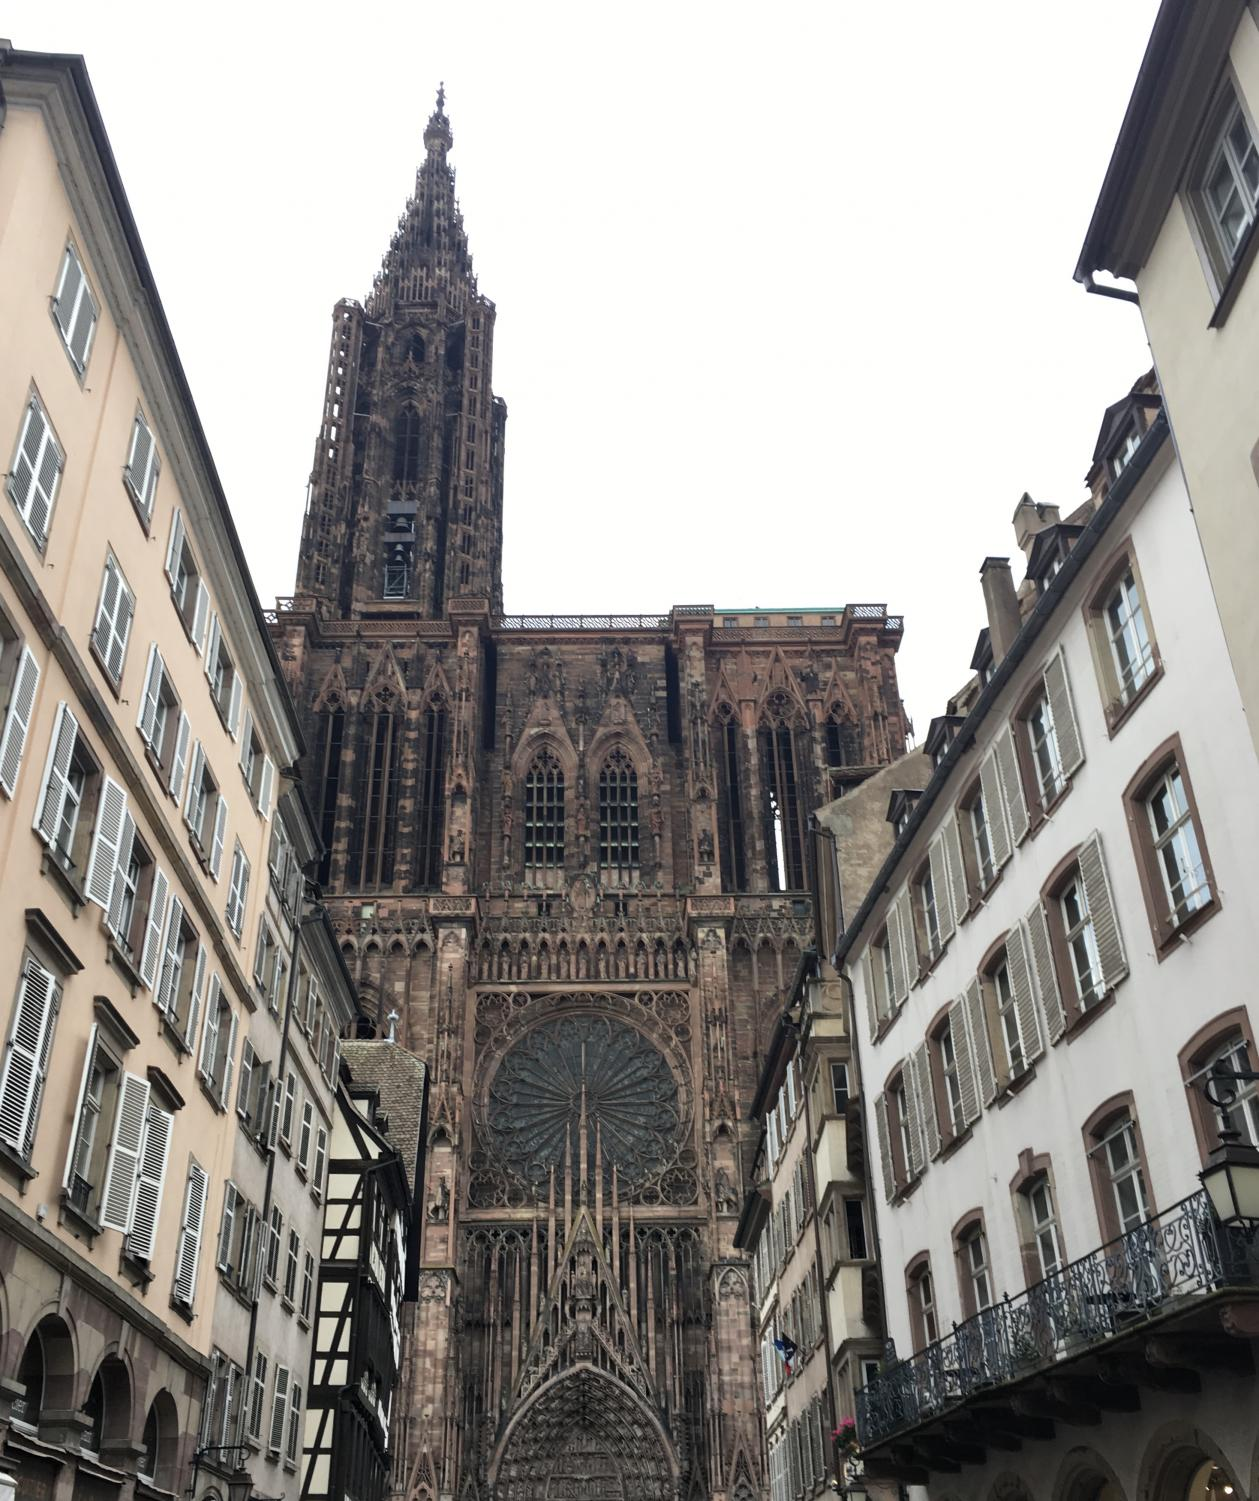 From+1647-1874%2C+the+Strasbourg+Cathedral+was+the+tallest+building+in+the+world.